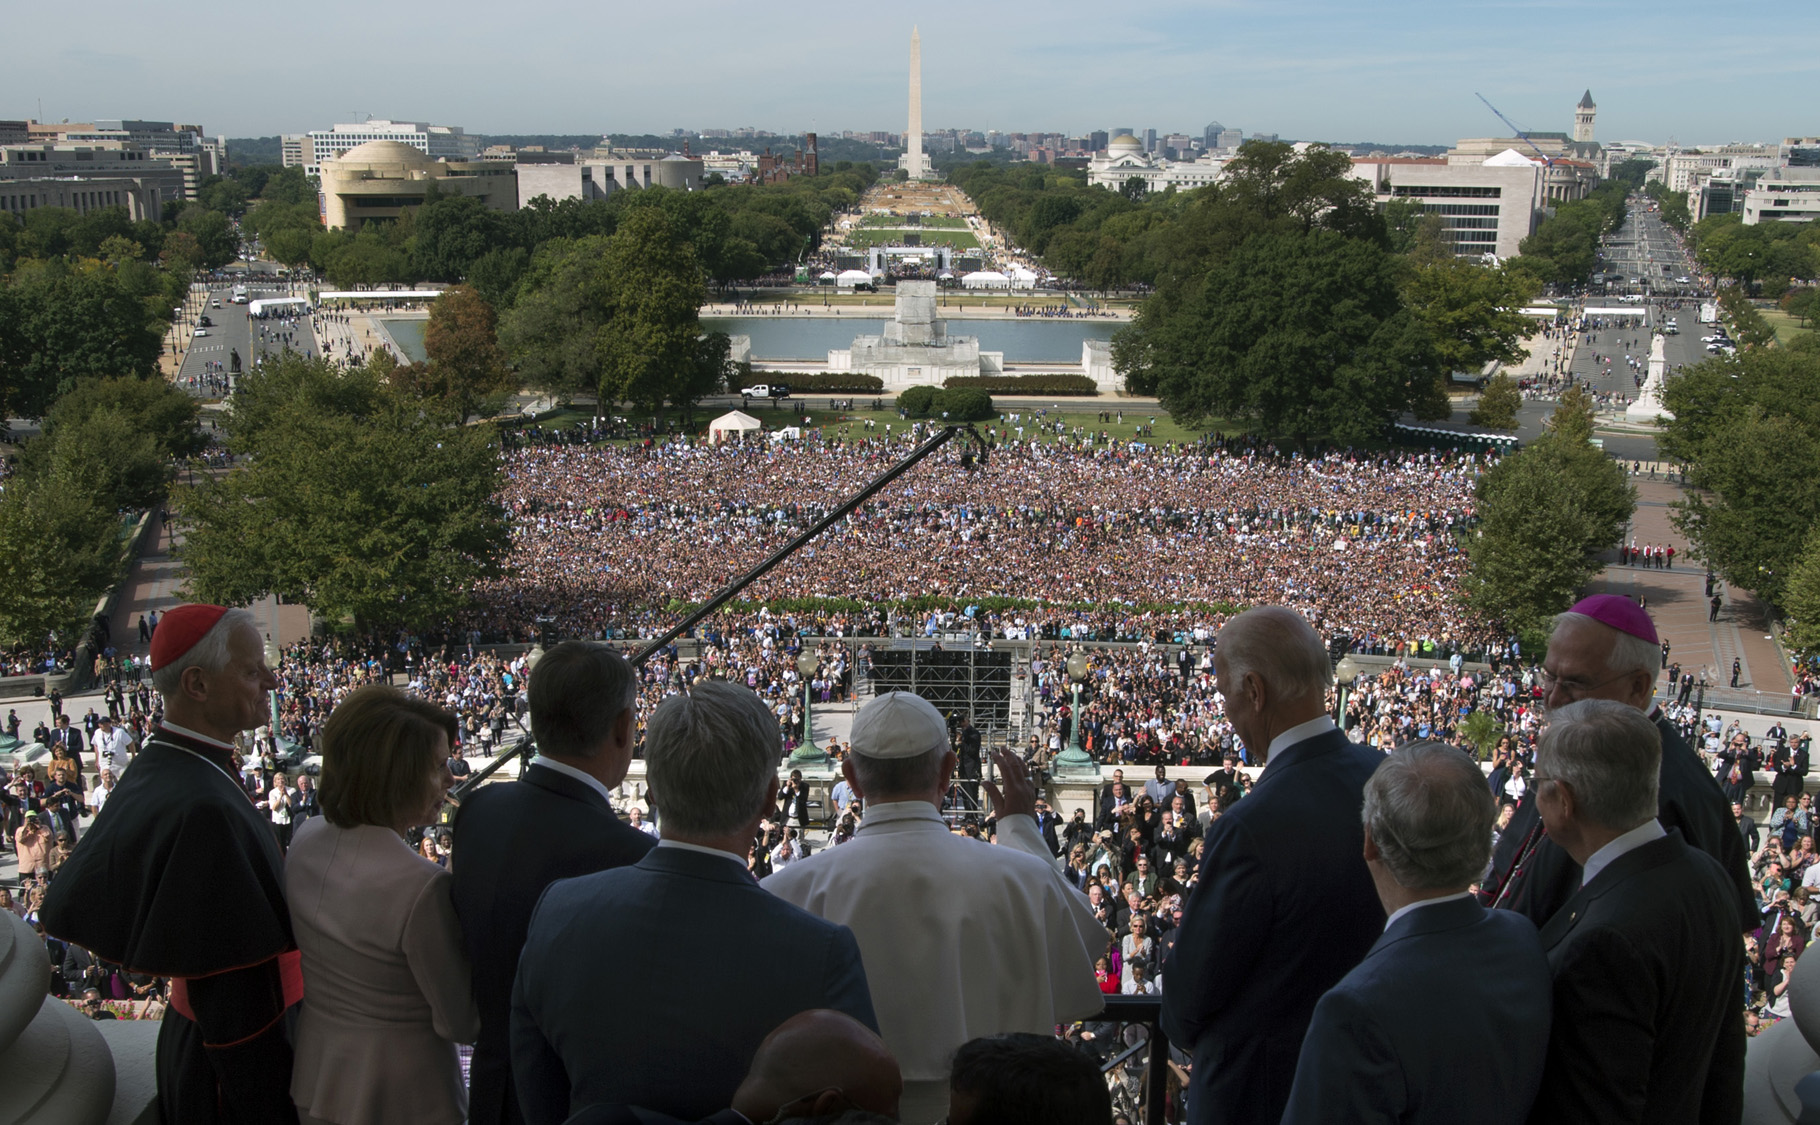 Pope Francis goes to Washington